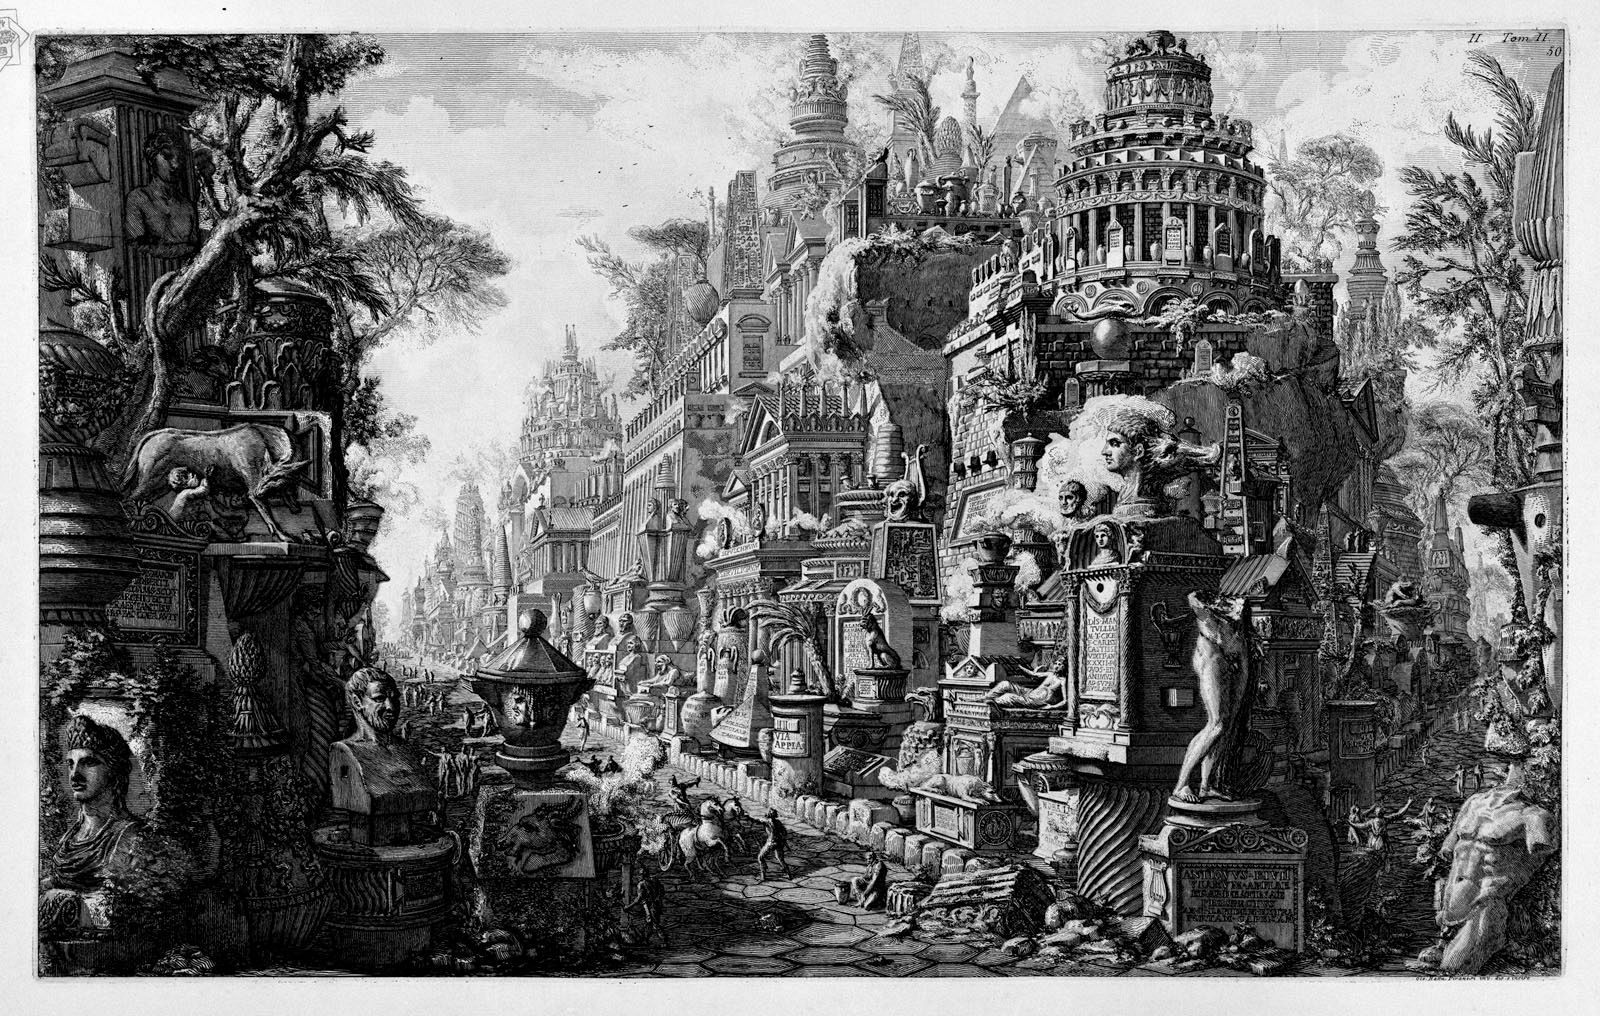 """Appian Way"", Giovanni Battista Piranesi's frontispiece for ""La antichità romane"", 1784."